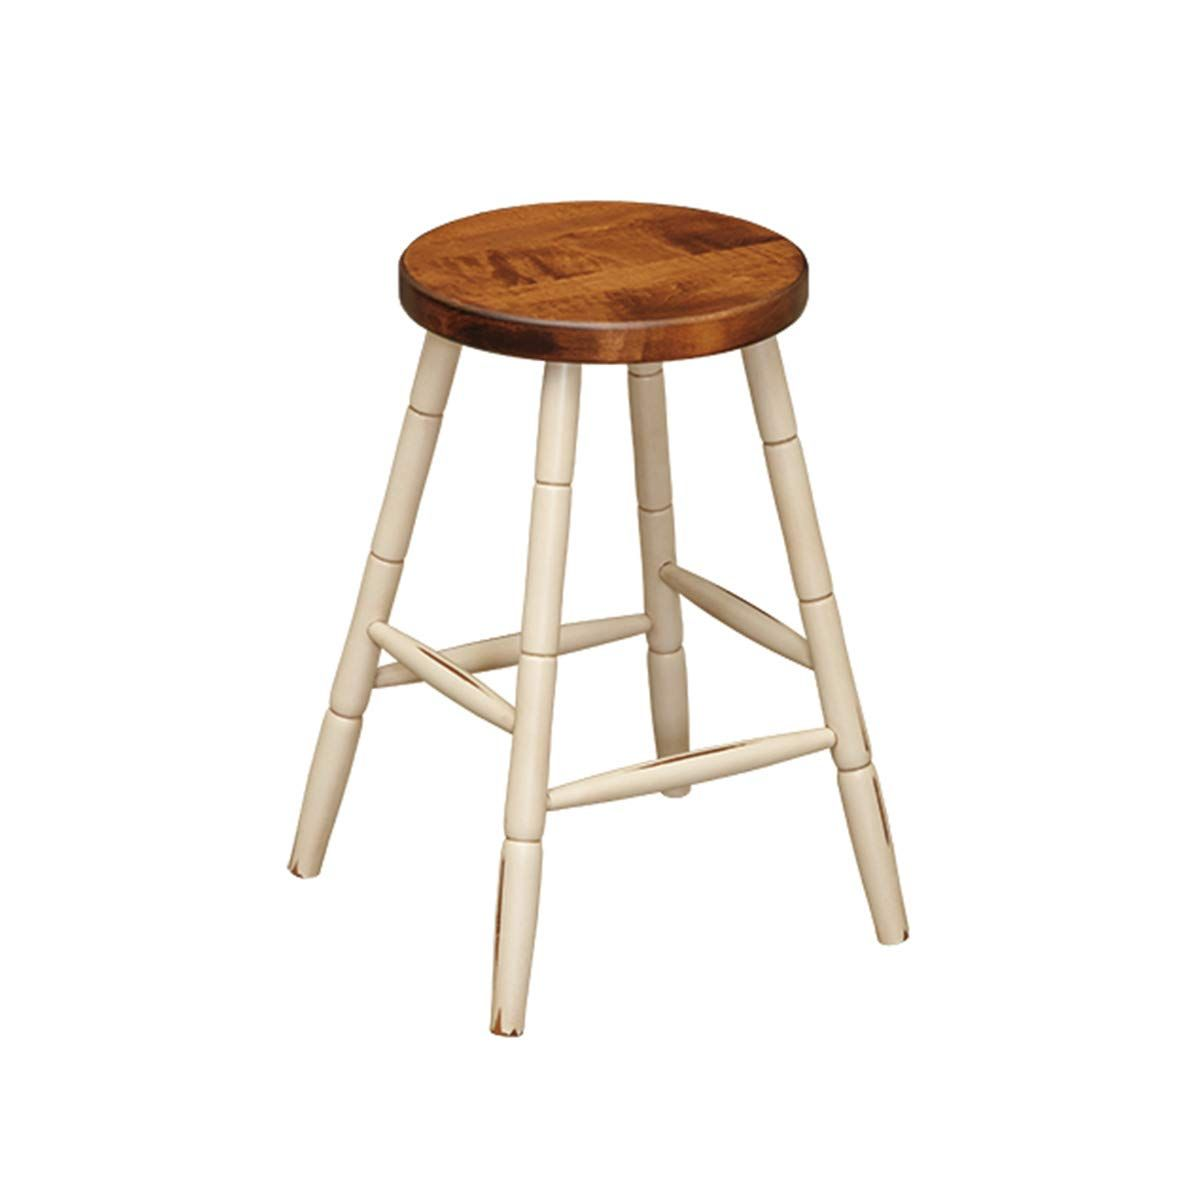 Surprising Lancasters Best Amish Hand Made 24 Inch Wooden Bar Stool Pabps2019 Chair Design Images Pabps2019Com